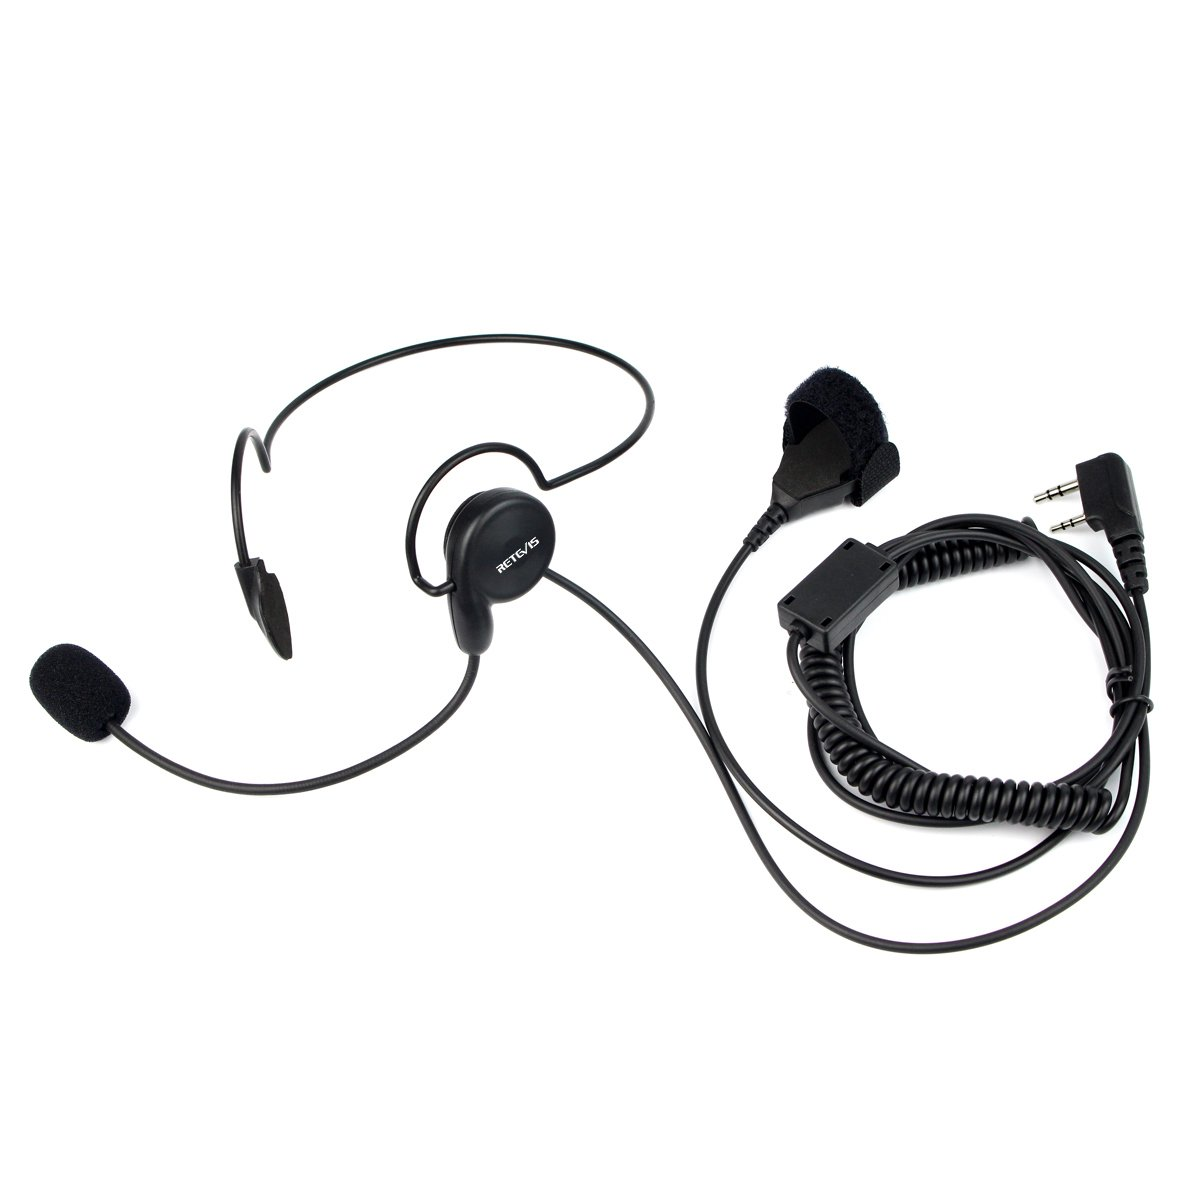 Retevis Overhead Headset Talkies Earpiece